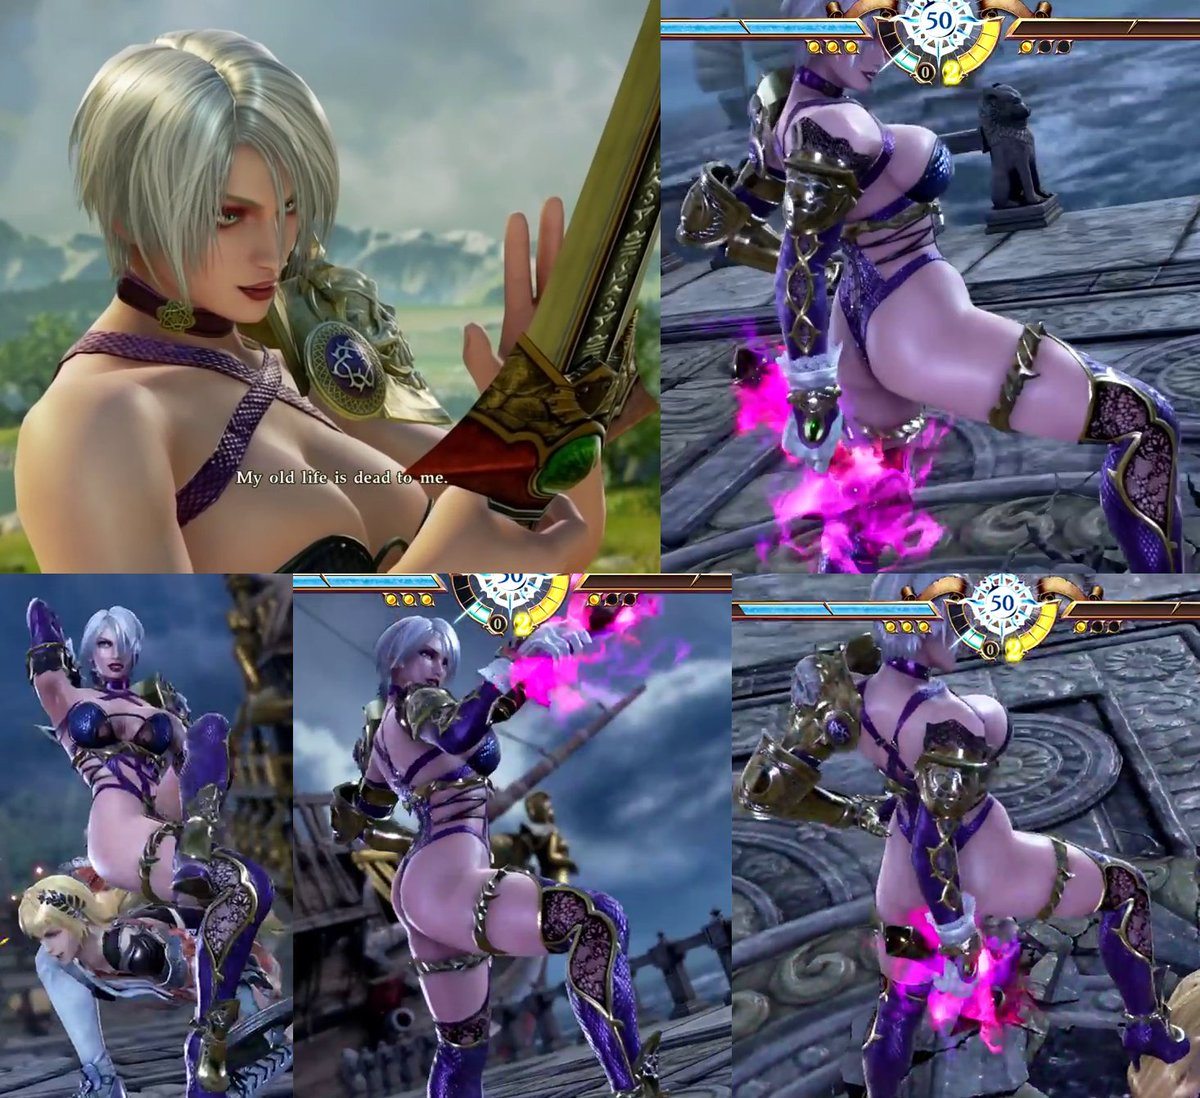 Animated Soul Caliber Porn isabellavalentine hashtag on twitter